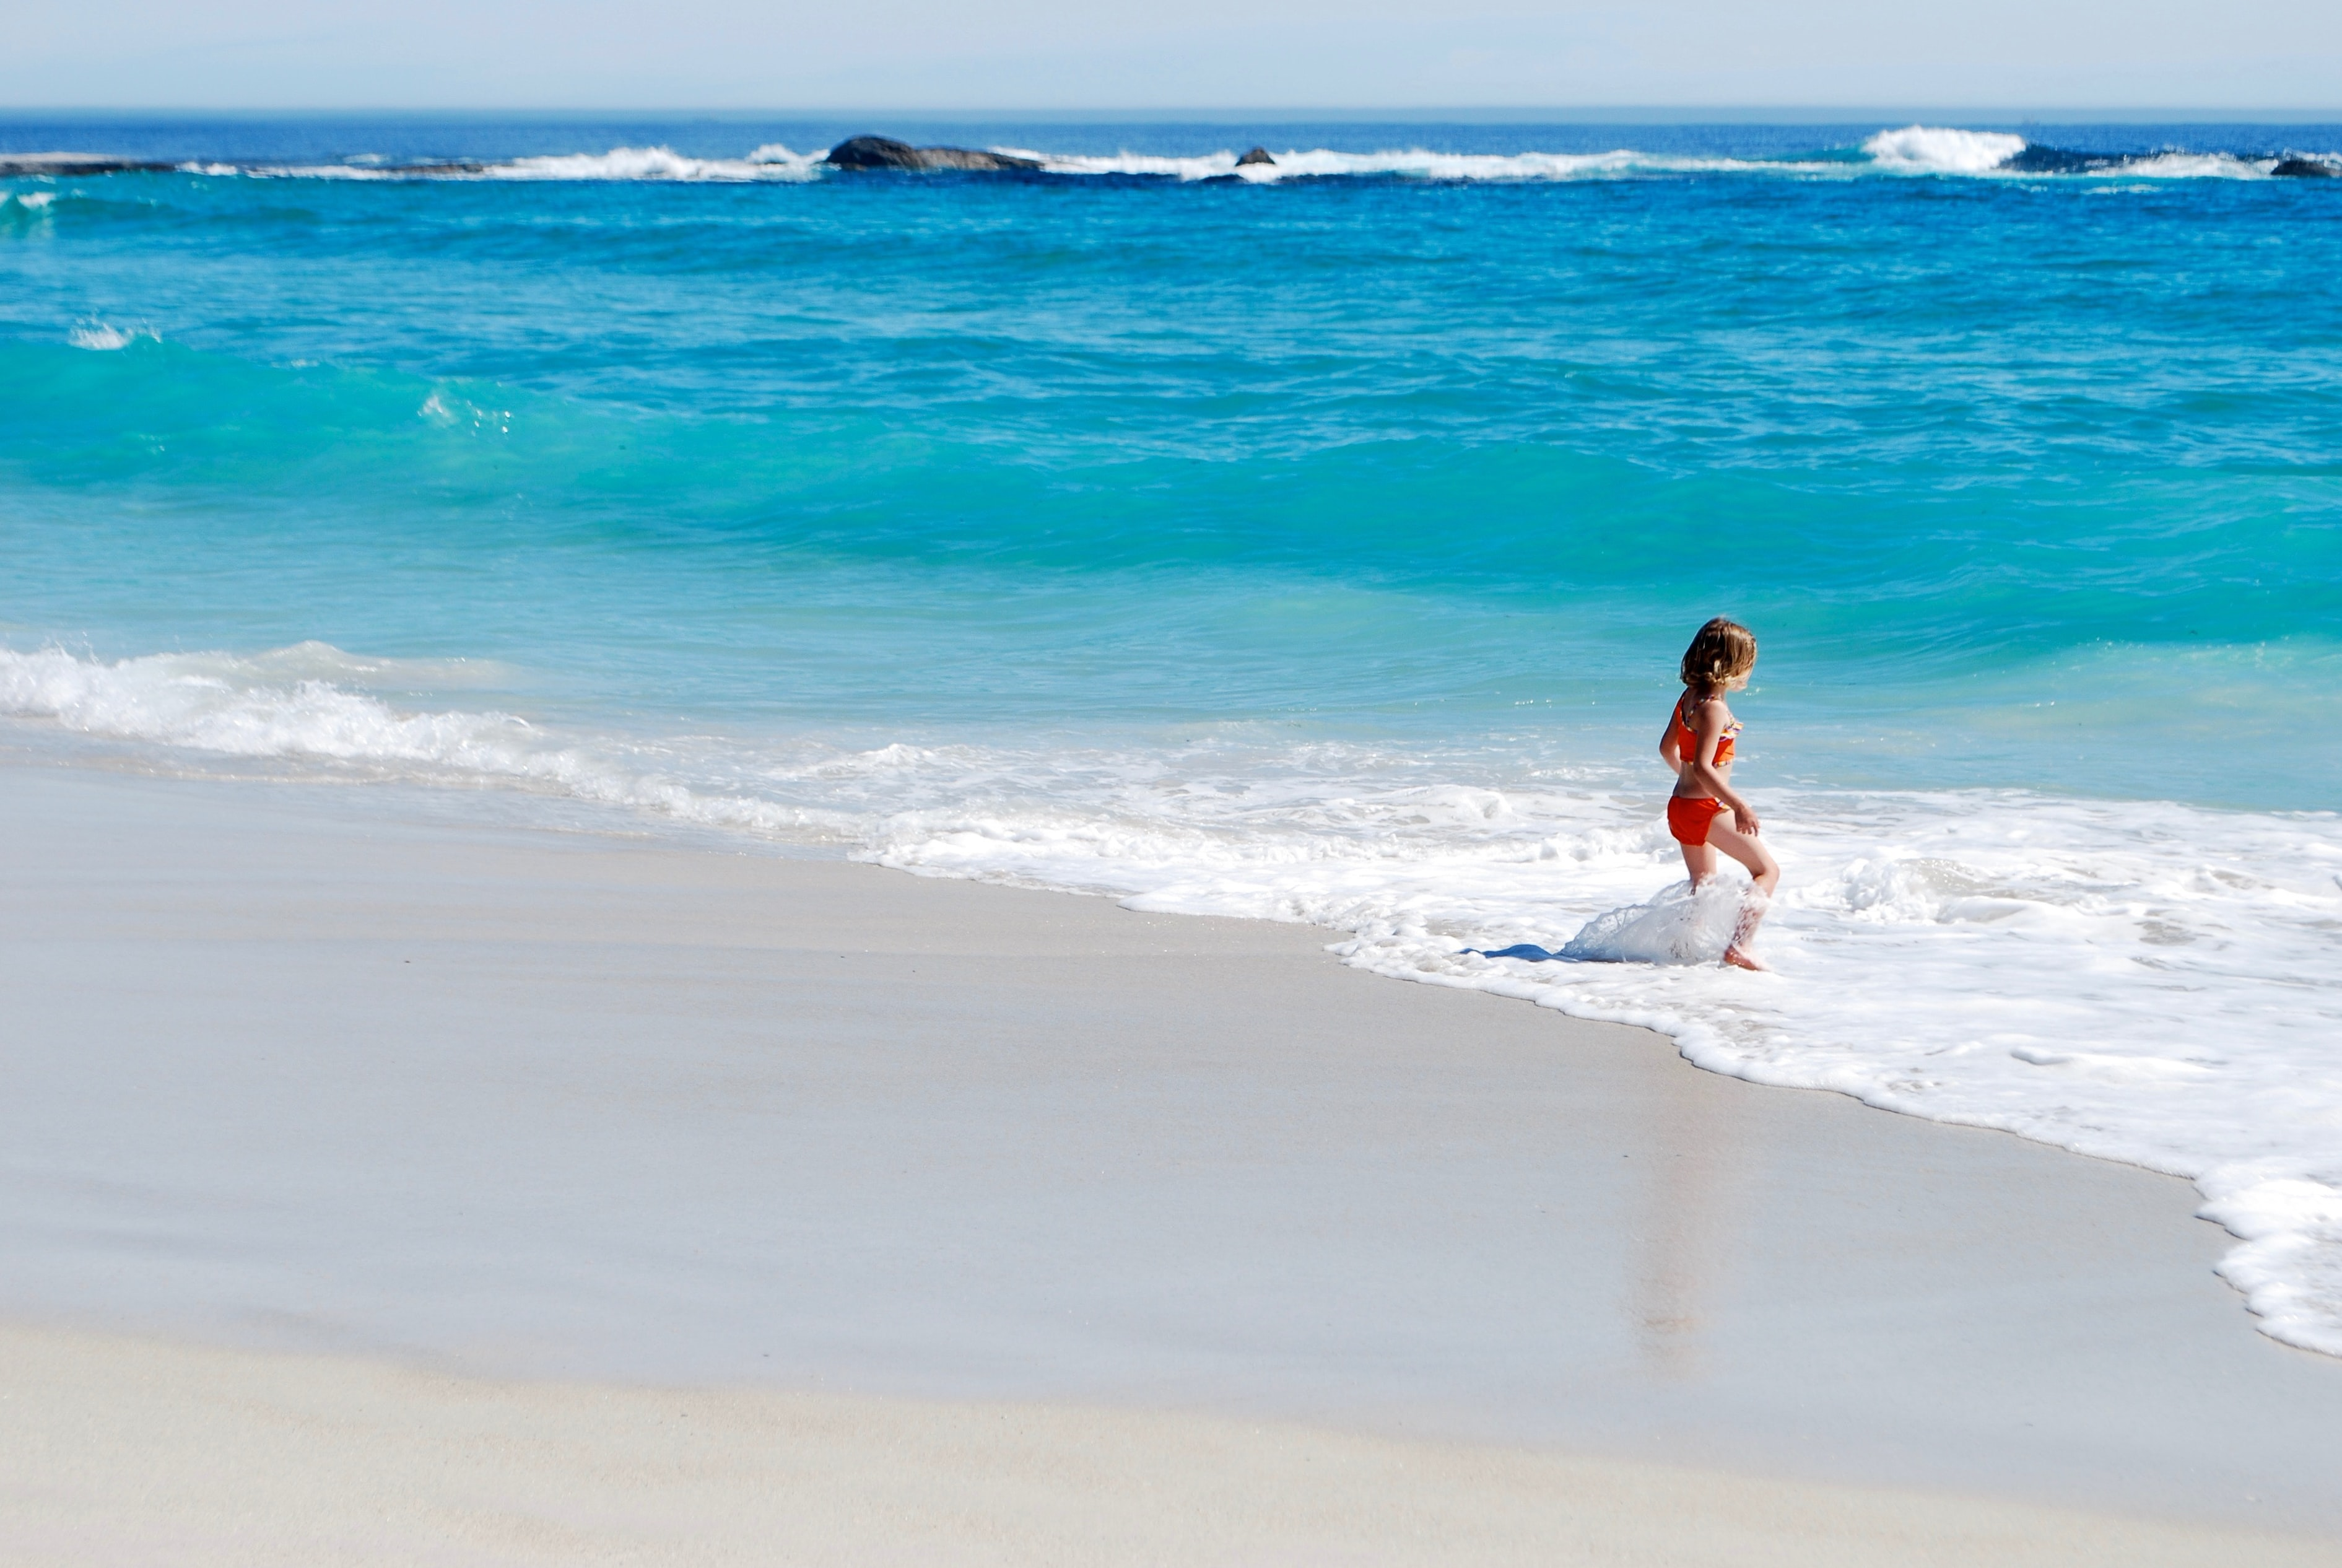 A small girl playing in the small waves on the seashore